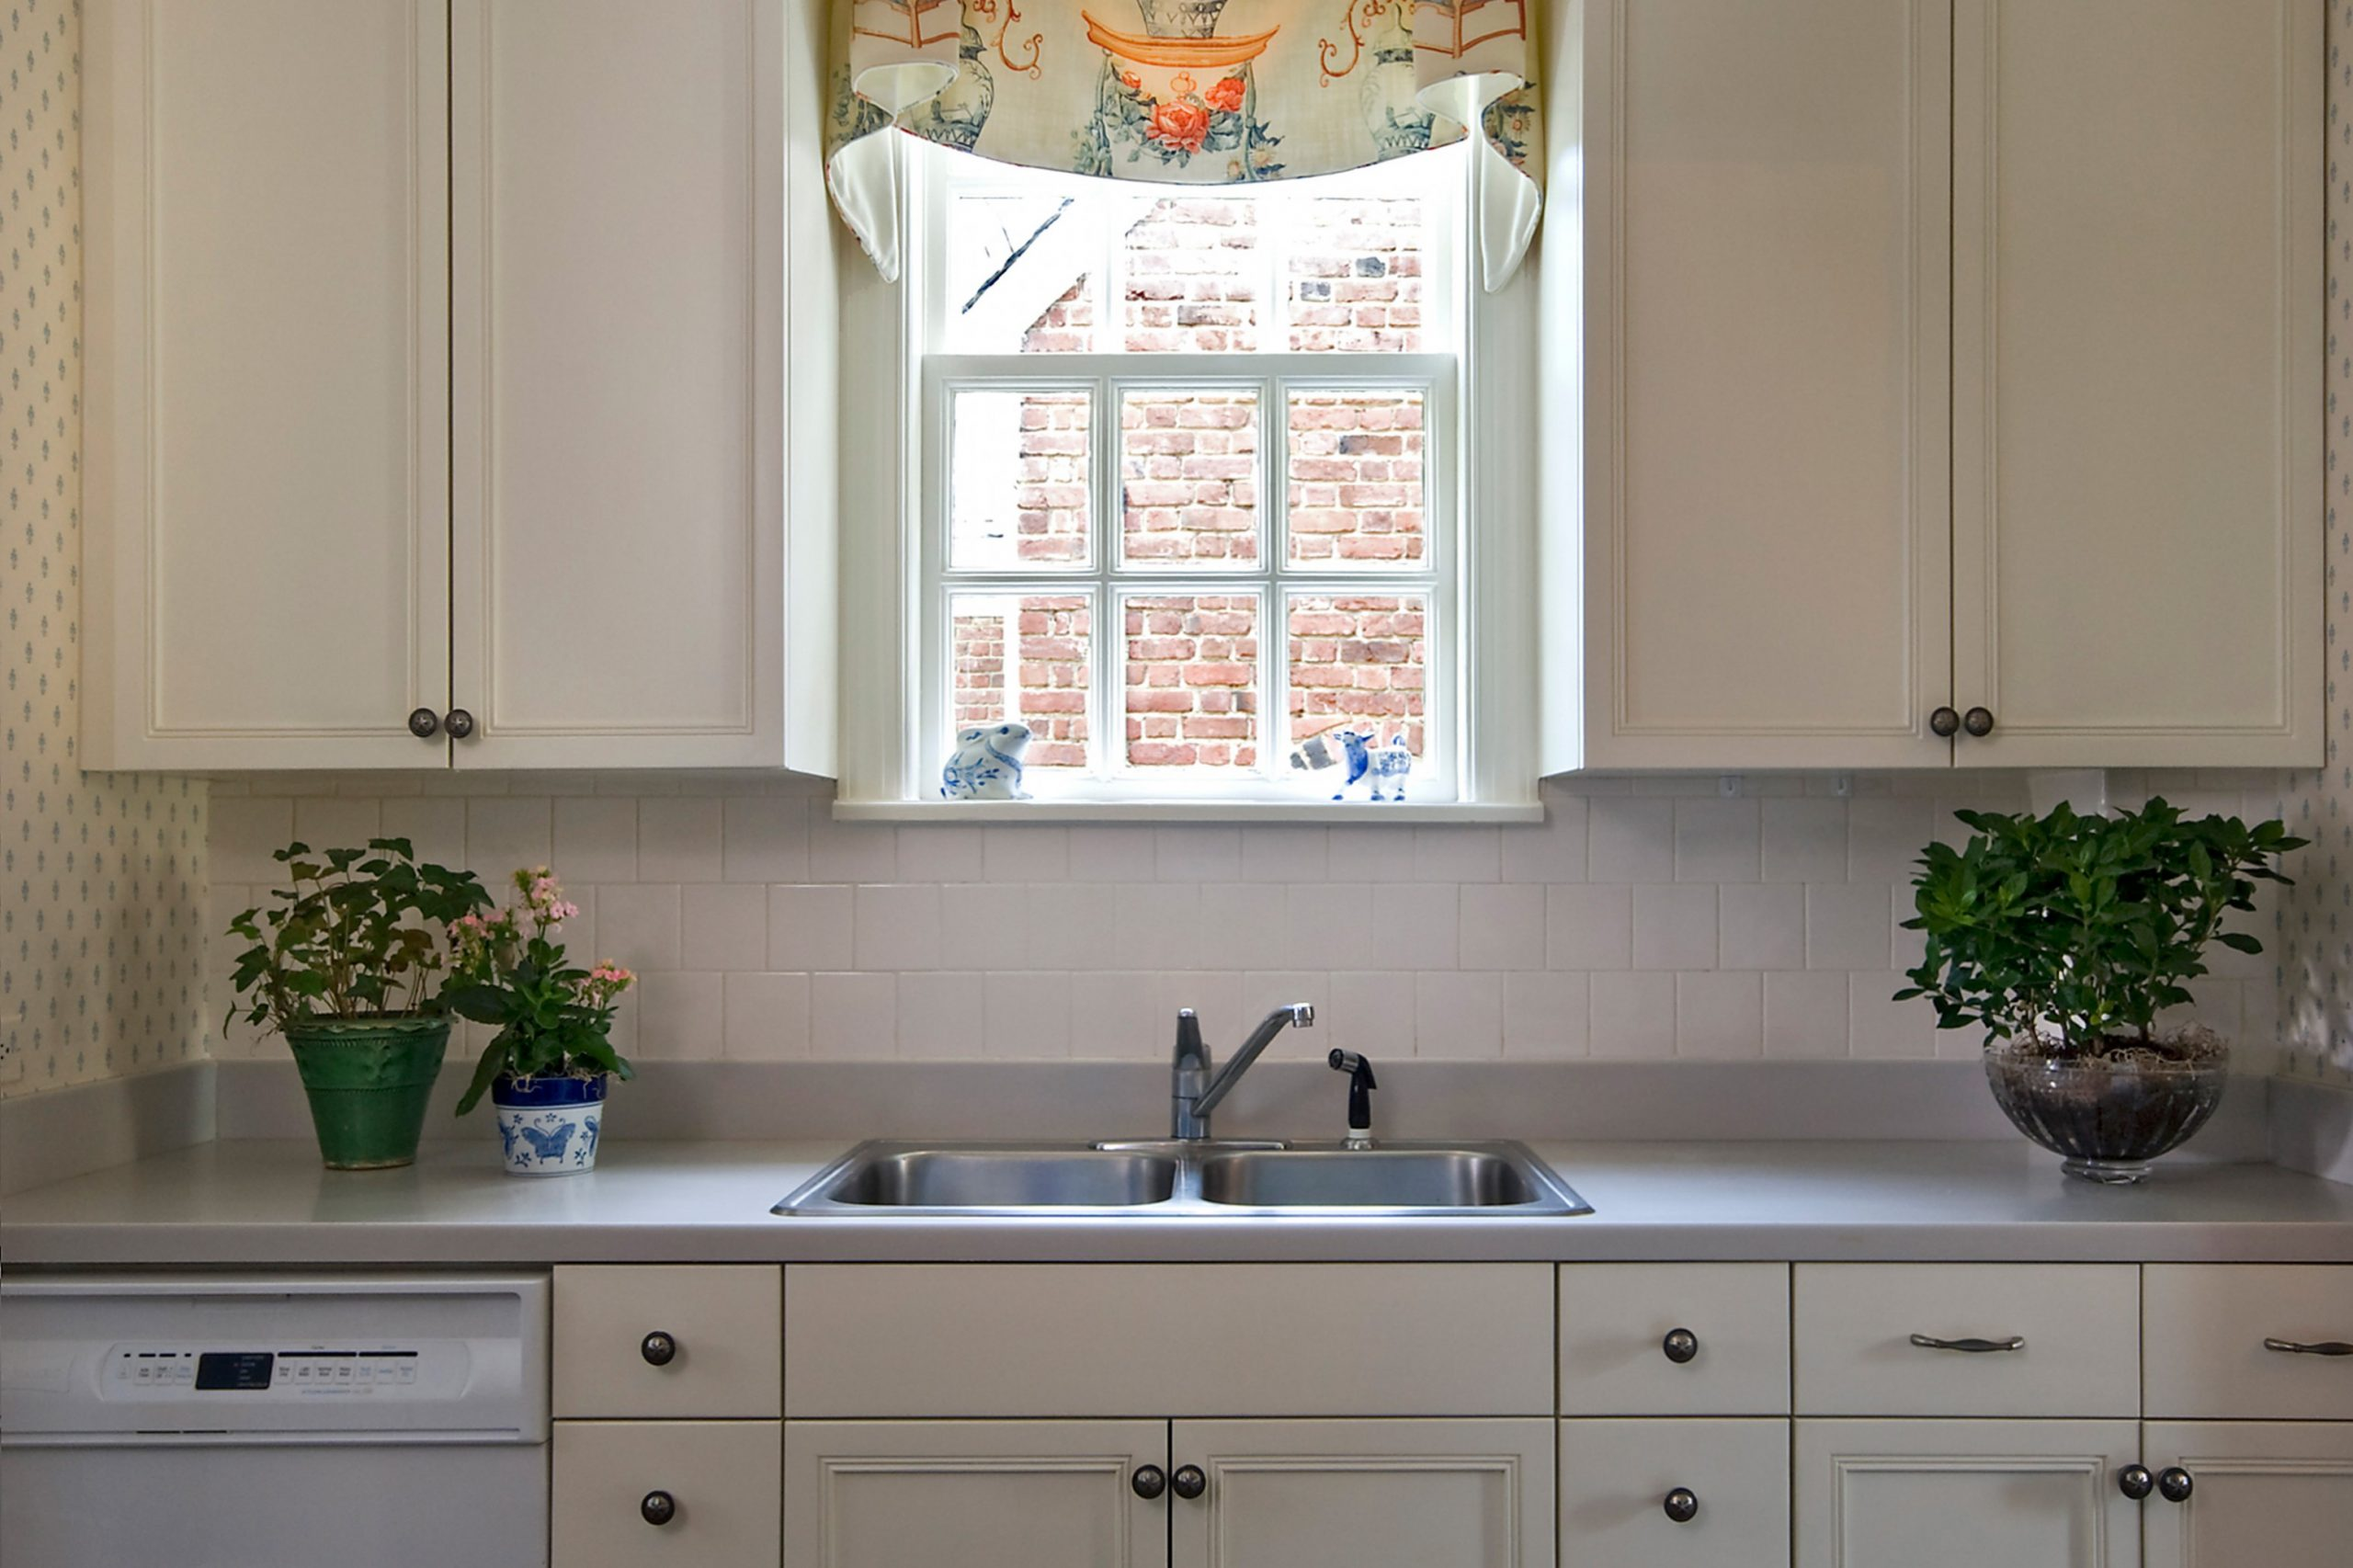 Kitchen Cabinet Refacing  Kitchen Refacing Cost - Cost Upgrade Kitchen Cabinets